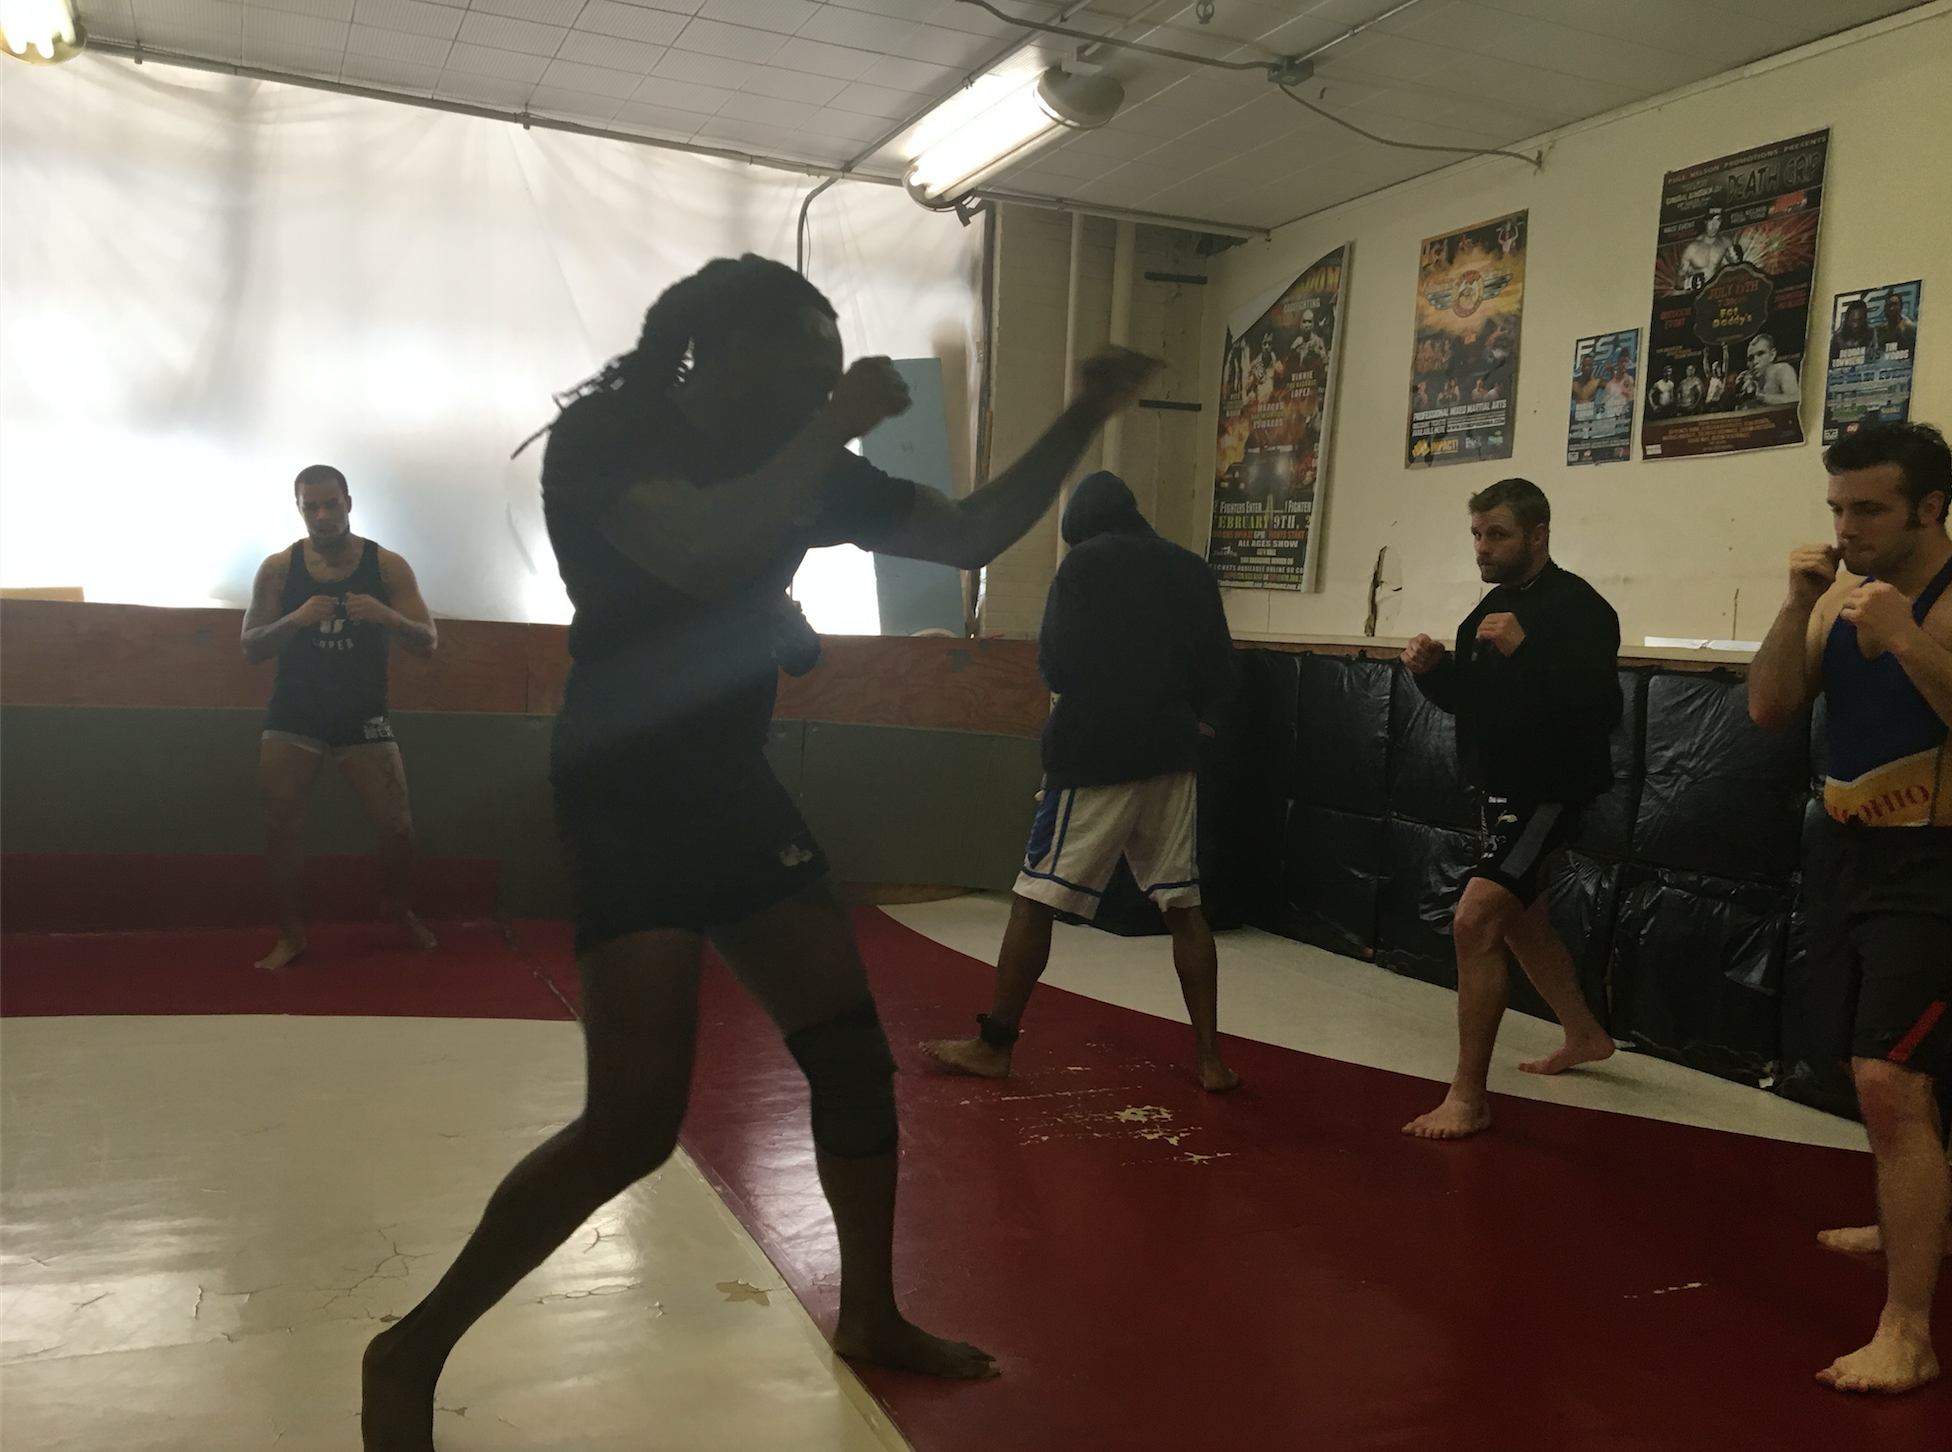 Lansing fighter Dequan Townsend reaching for MMA stardom | WKAR